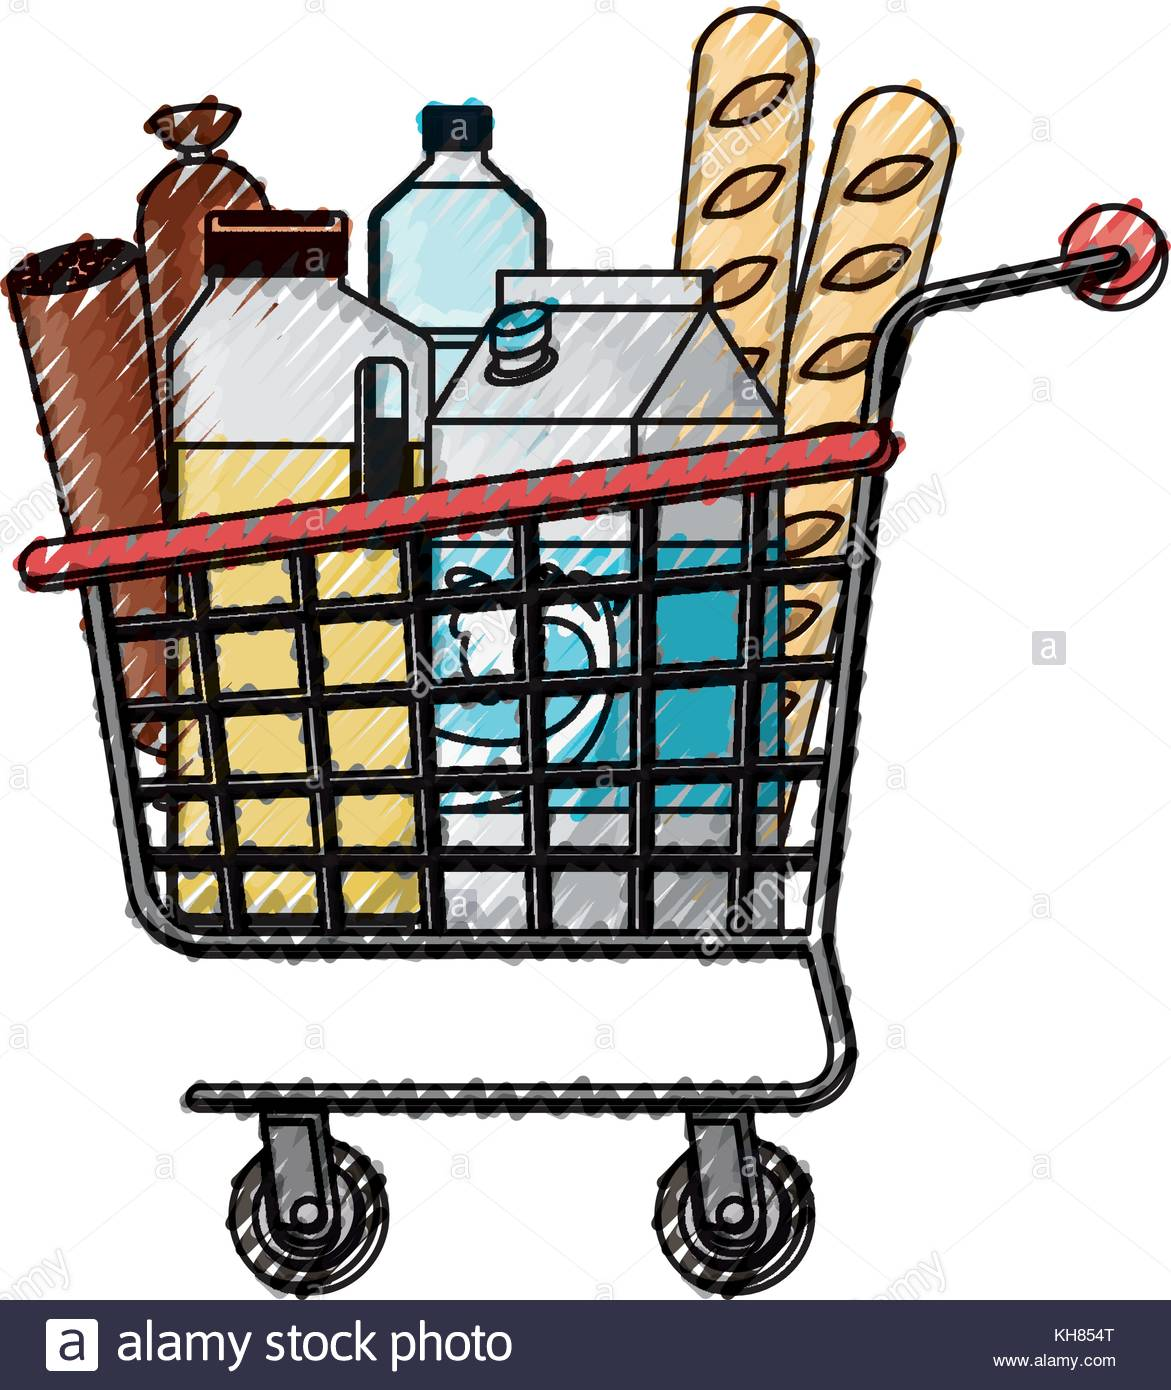 1171x1390 Supermarket Shopping Cart With Foods Sausage Bread And Drinks